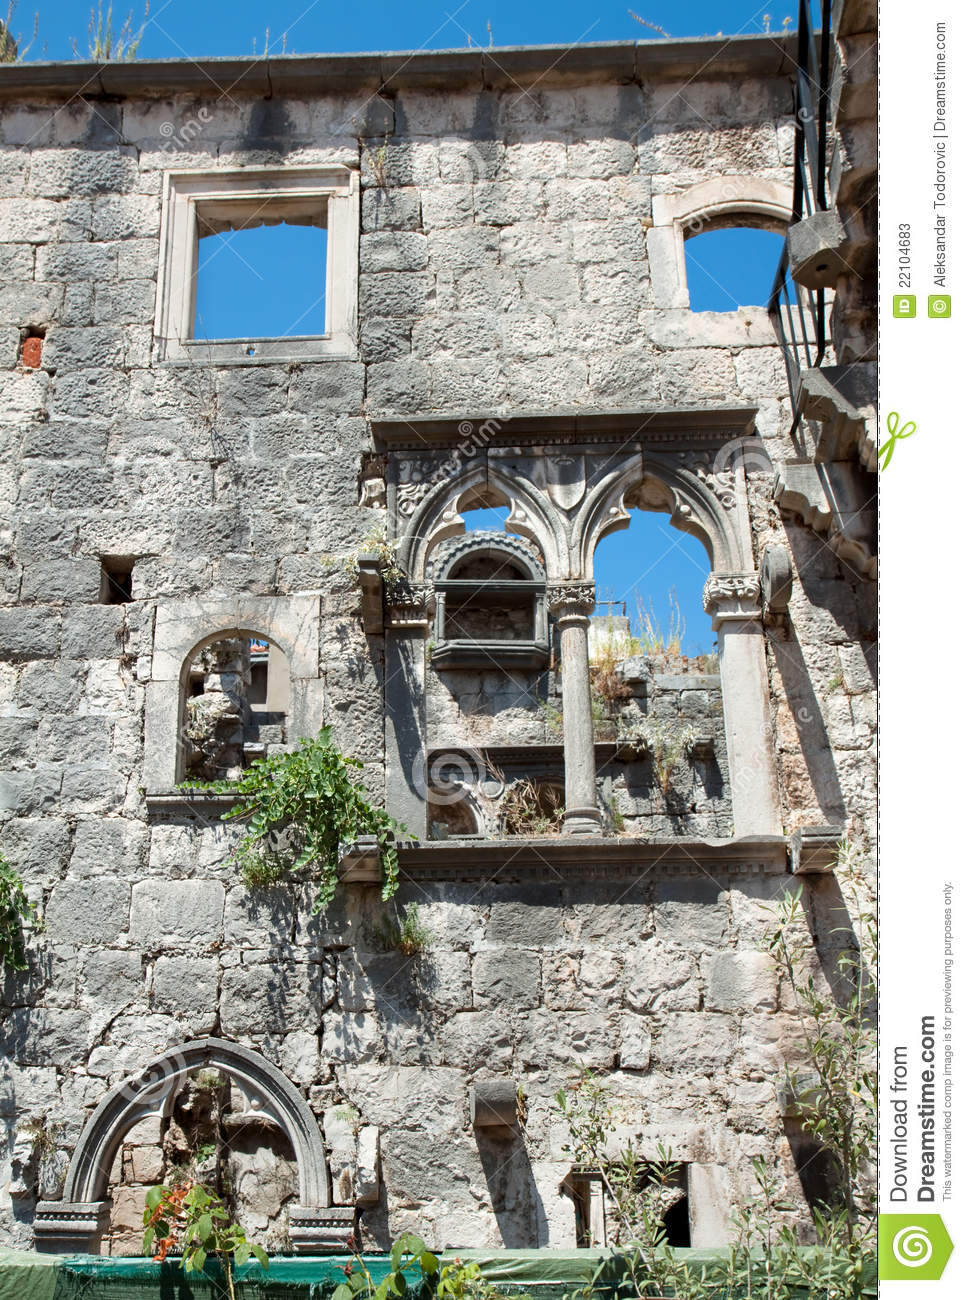 home of marco polo on the island of korcula stock photos image 22104683. Black Bedroom Furniture Sets. Home Design Ideas